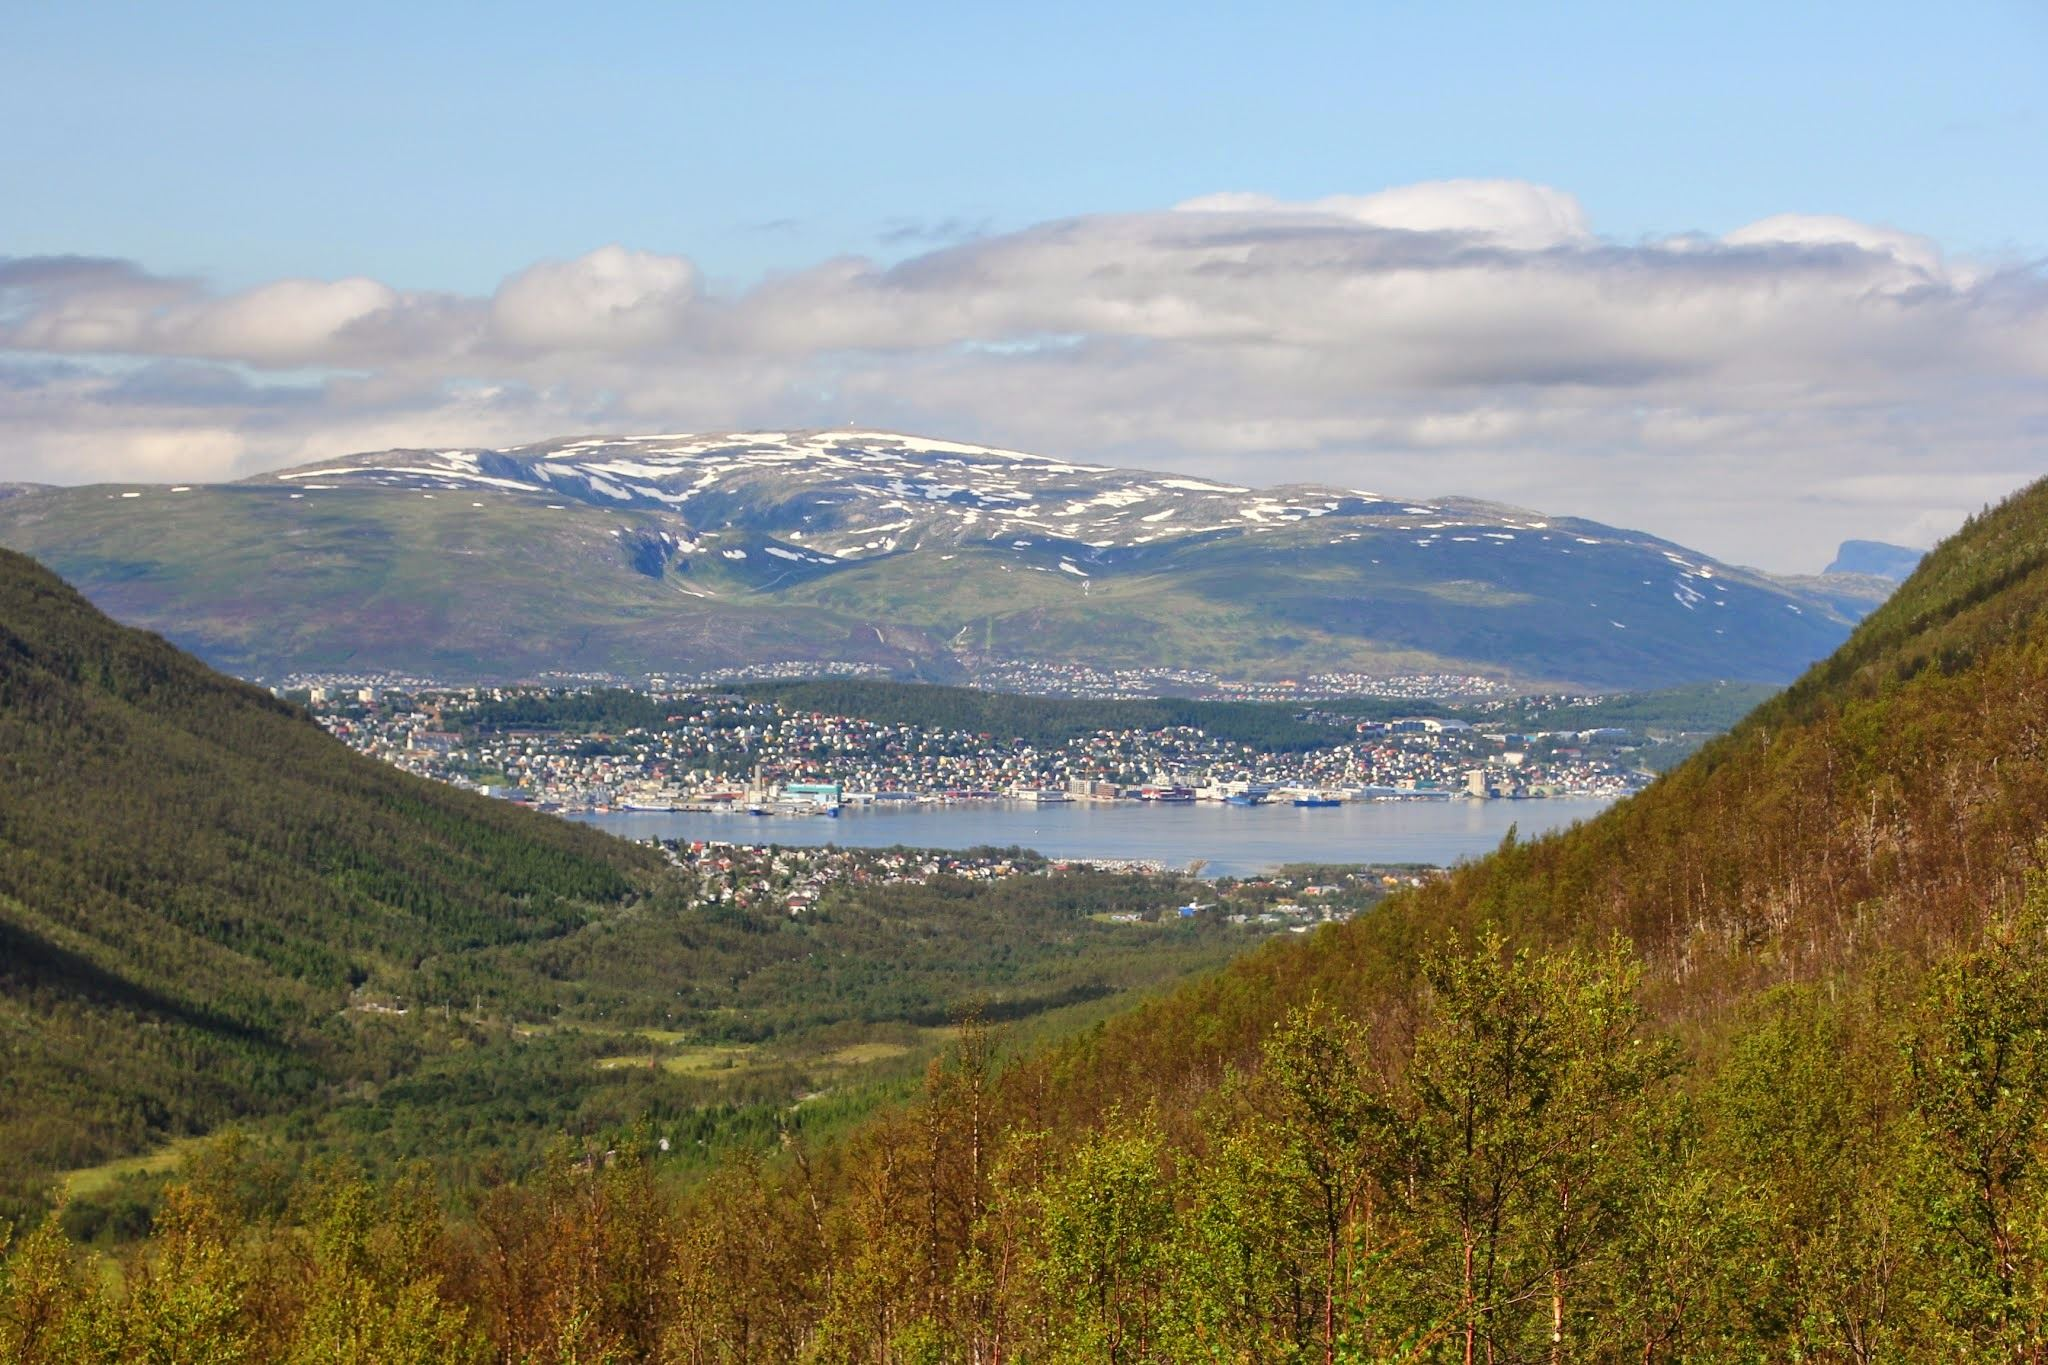 Guided Mountain Bike Trip Tromsø-Cable Car-Tromsdalen Valley - Tromsø Outdoor